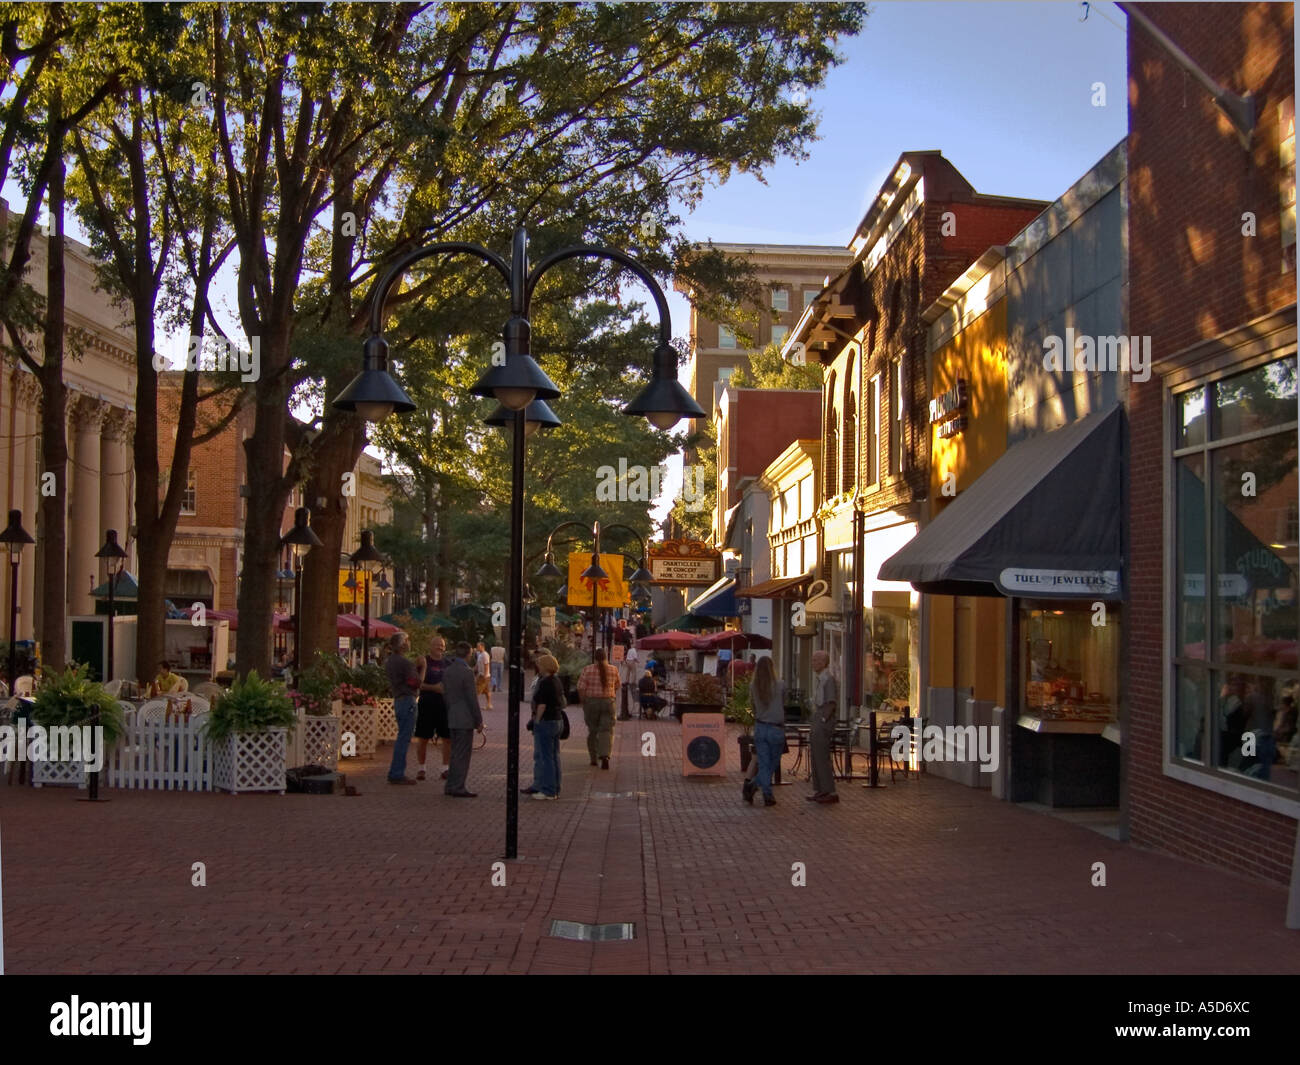 Virginia Va Southeast Stock Photos & Virginia Va Southeast Stock ...